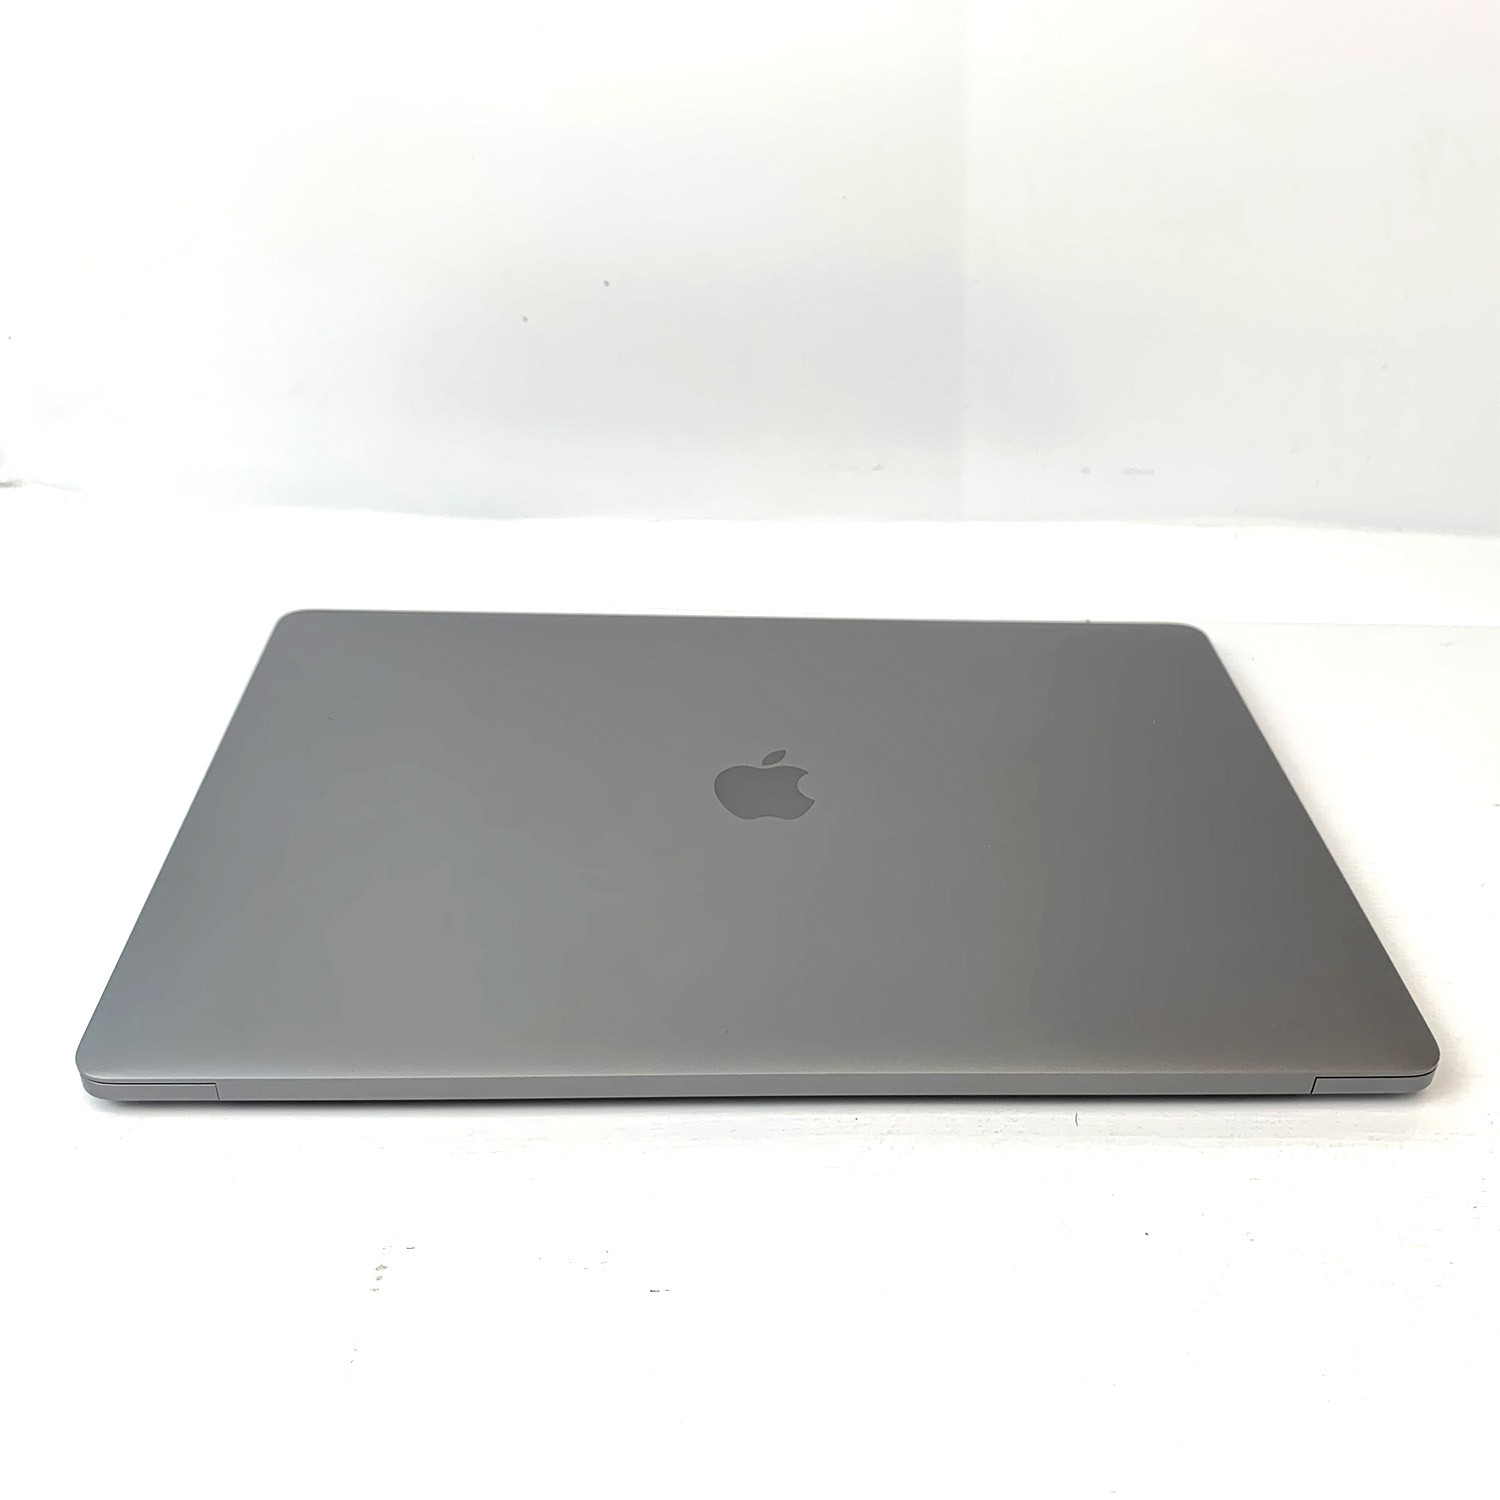 Macbook Pro 15 Silver i7 2.7Ghz 16GB 512GB SSD MLH42LL/A Seminovo